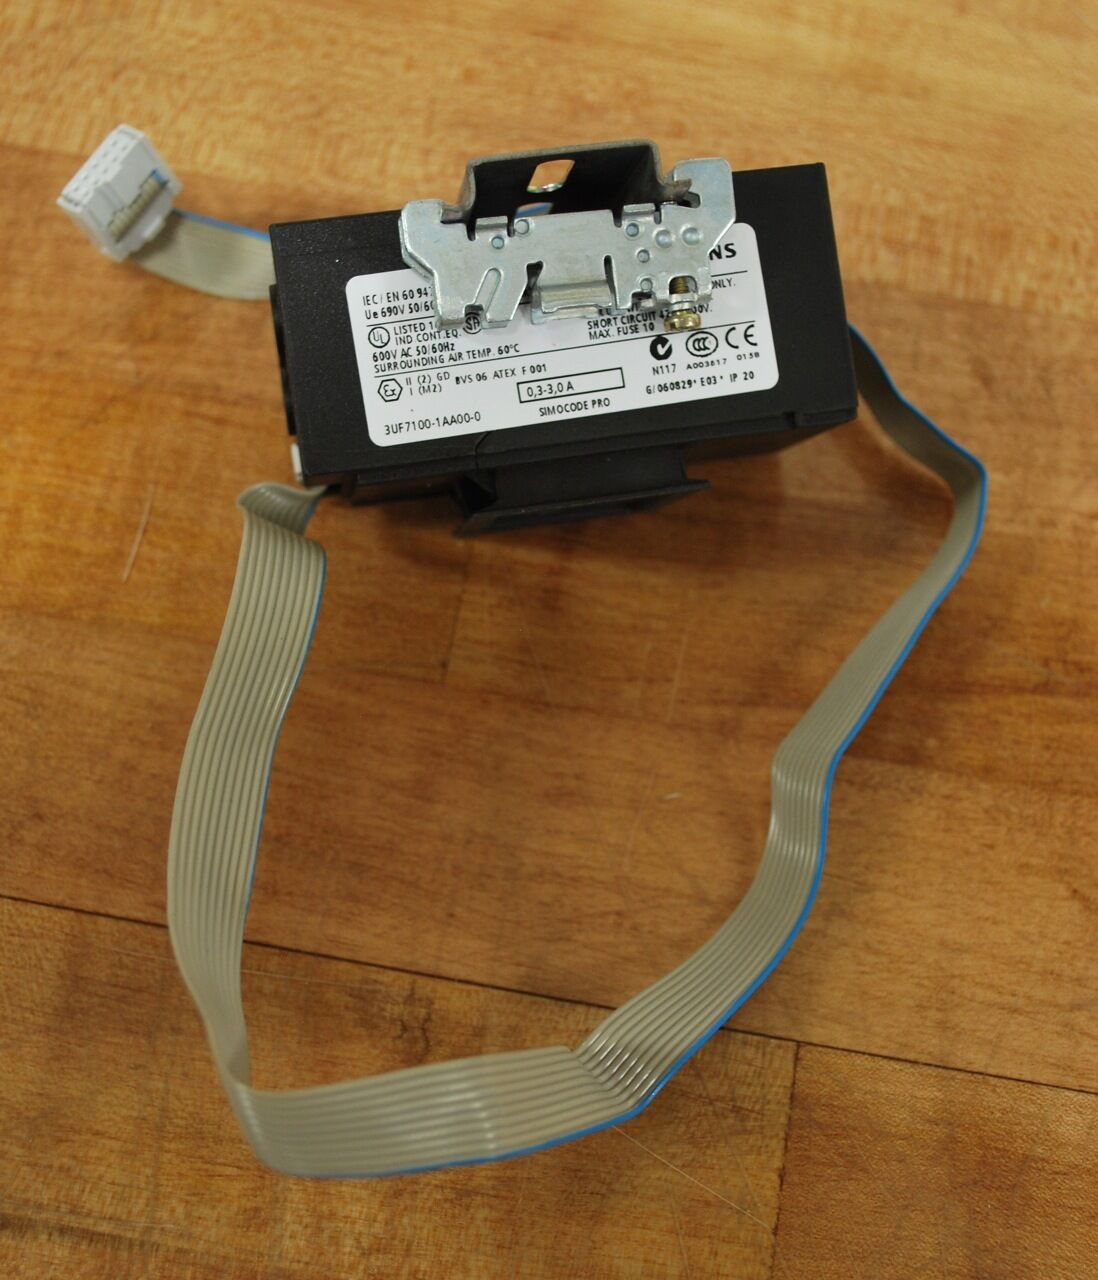 Siemens 3UF7100-1AA00-0, Current Measuring Module 0.3-3.0a, 600vac - USED